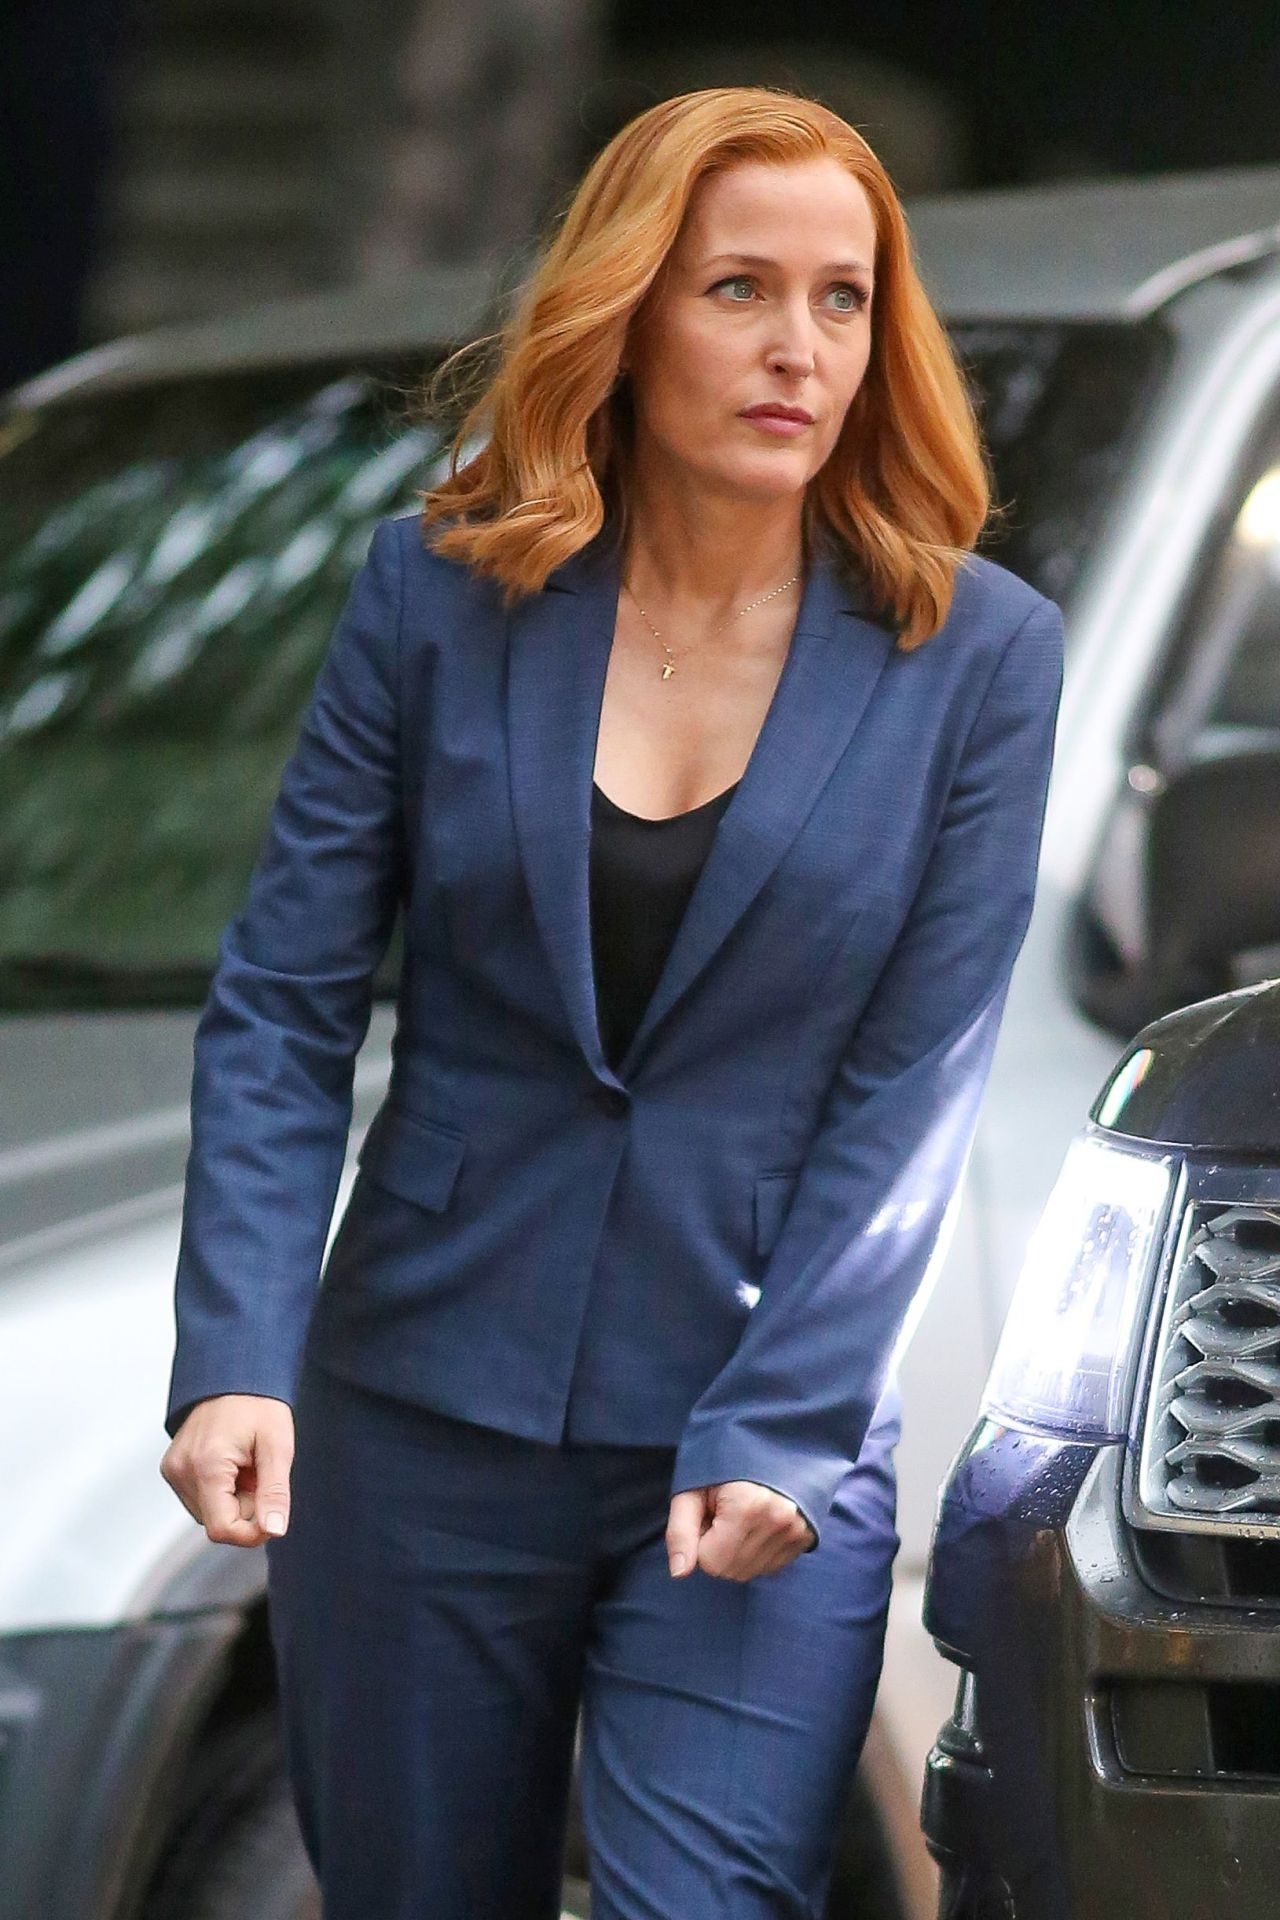 Gillian Anderson On The Set Of The X Files In Vancouver